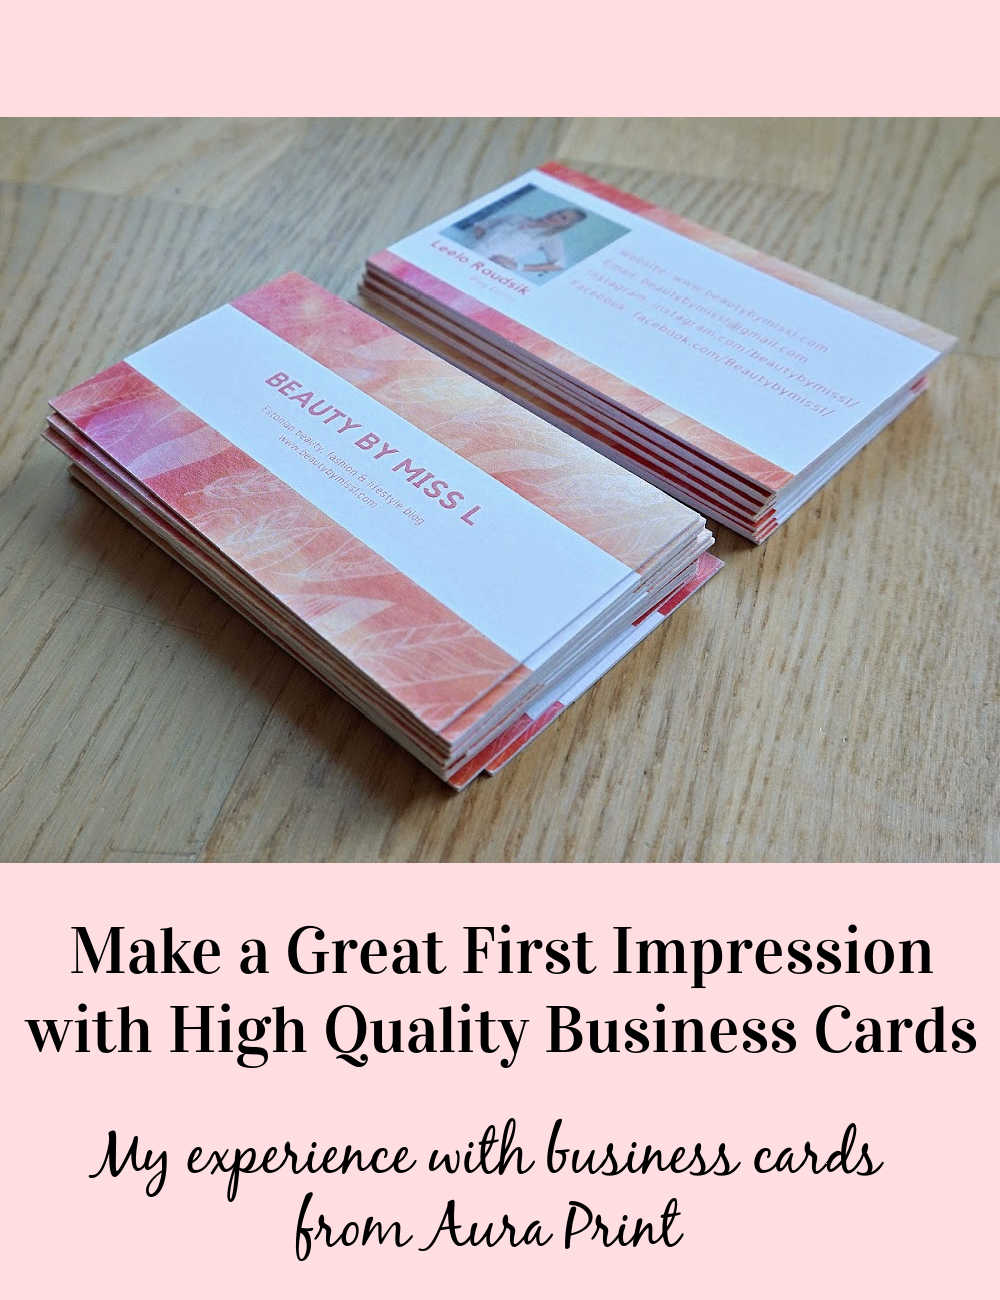 Make a great first impression with high-quality business cards. My experience with business cards from Aura Print.